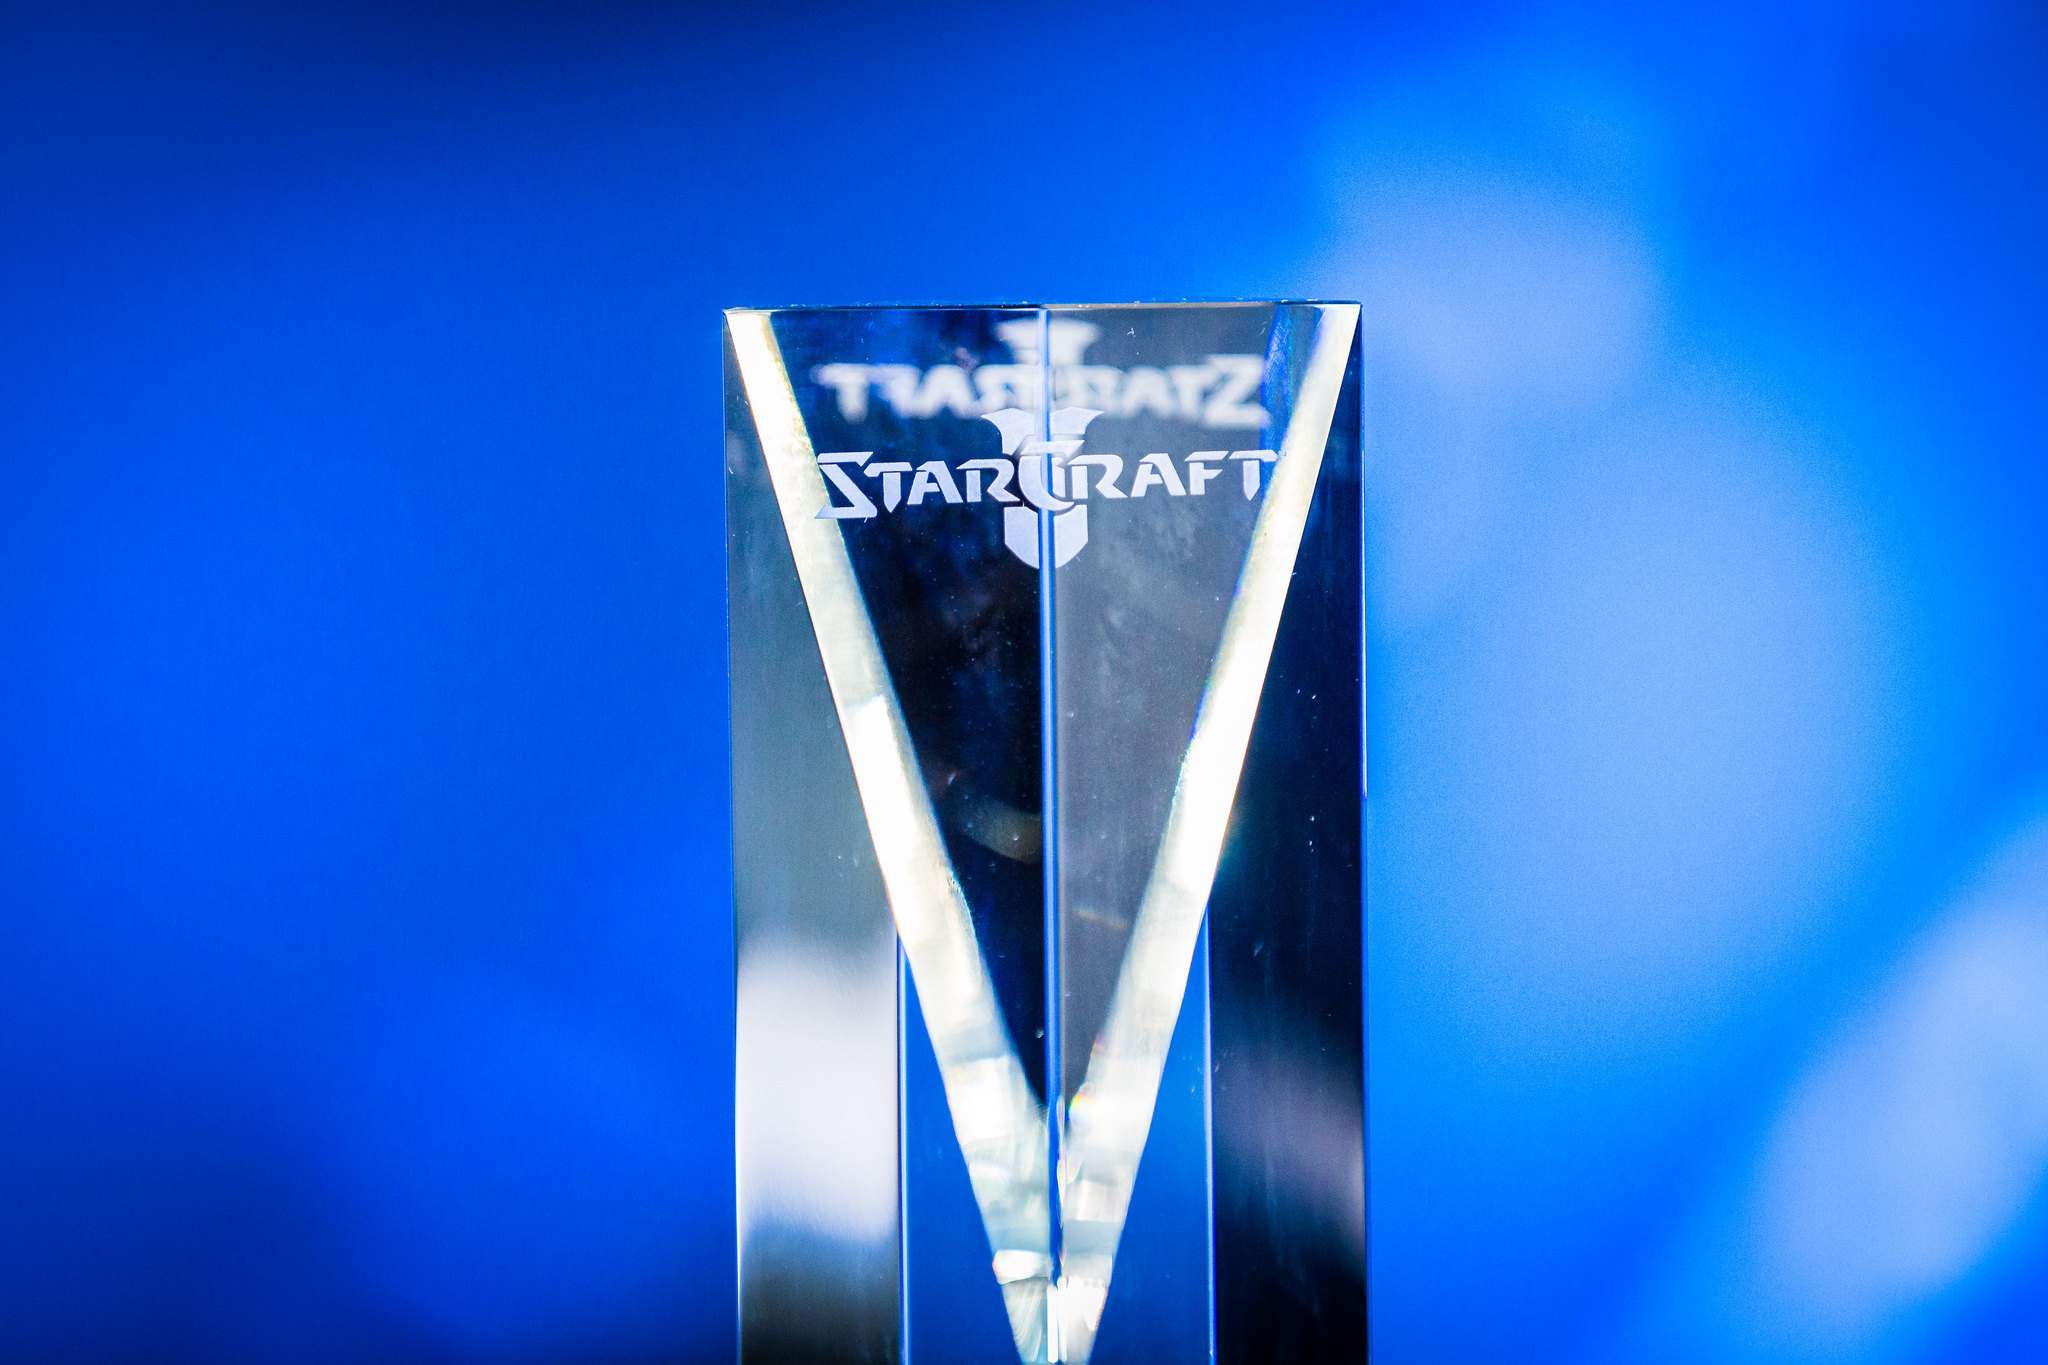 StarCraft, WCS Season 3 Premier League